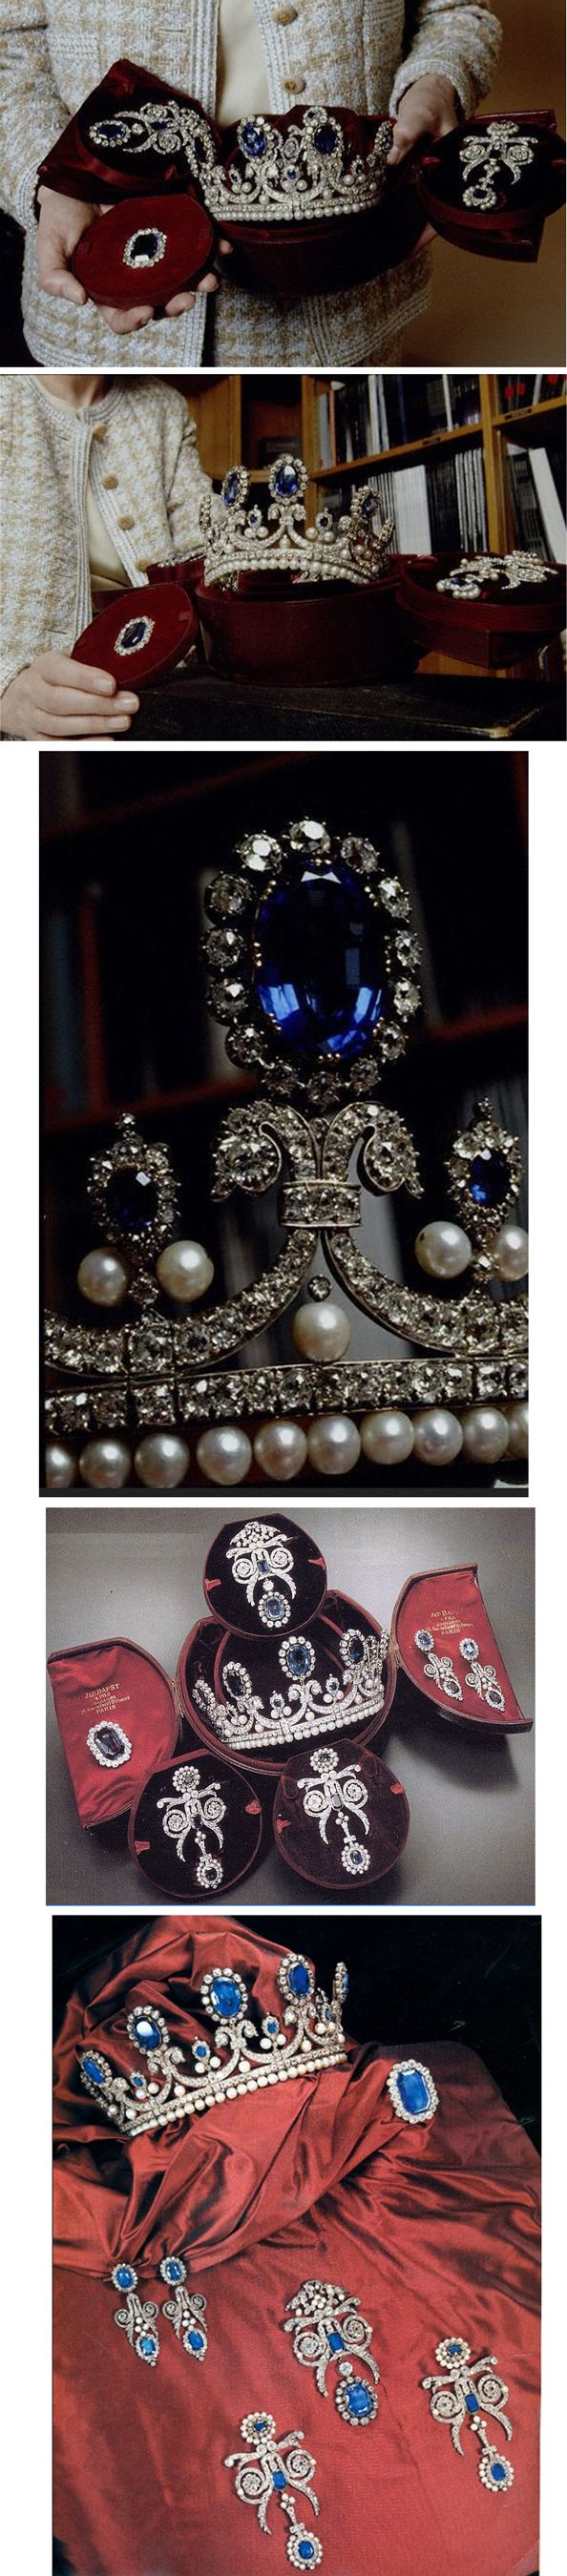 Queen Marie-Amélie's Sapphire, Diamond, and Pearl Tiara and Parure, France (1830; made by Bapst; sapphires, pearls, diamonds). More information here: http://orderofsplendor.blogspot.com/2013/07/tiara-thursday-two-french-sapphire.html